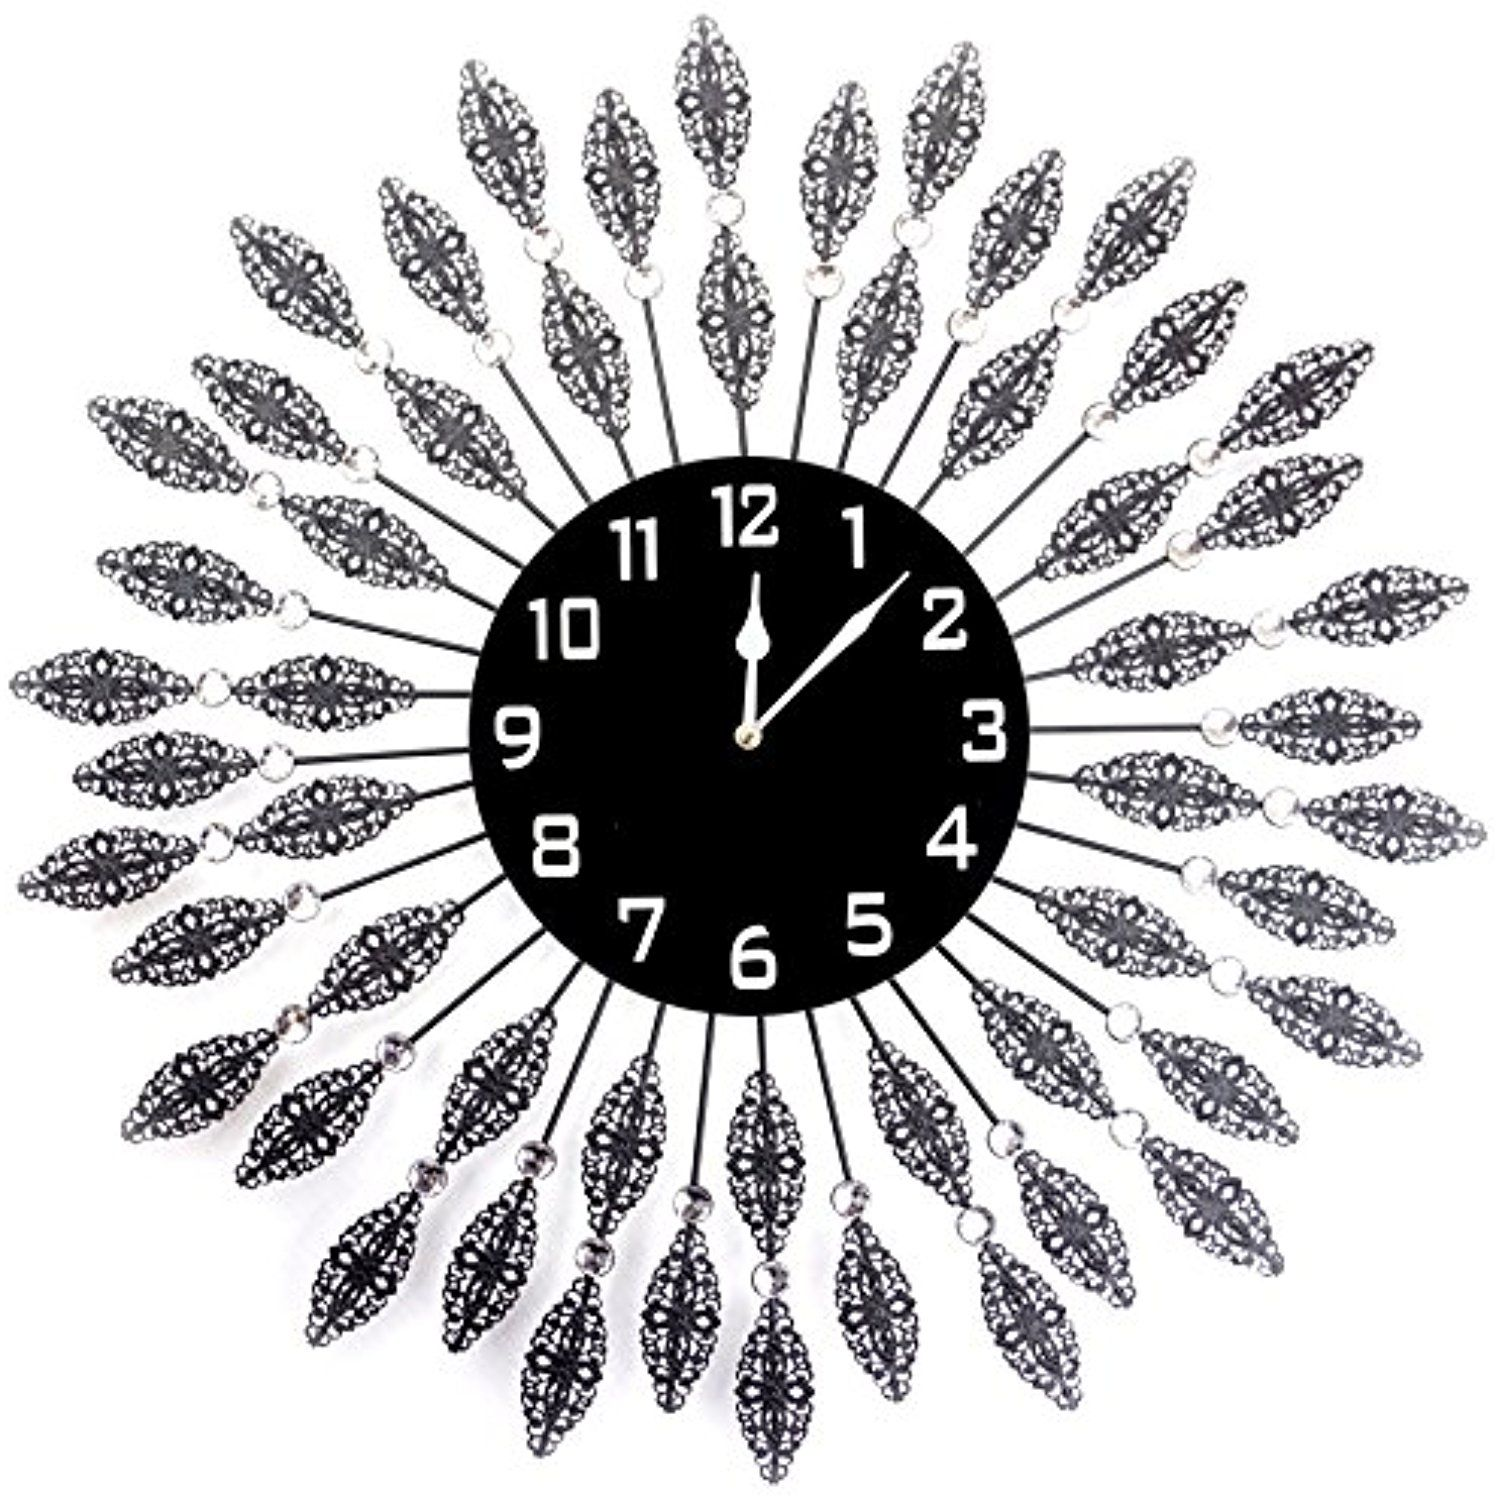 Lulu Decor, Black Drop Wall Clock, Glass Dial with Lines